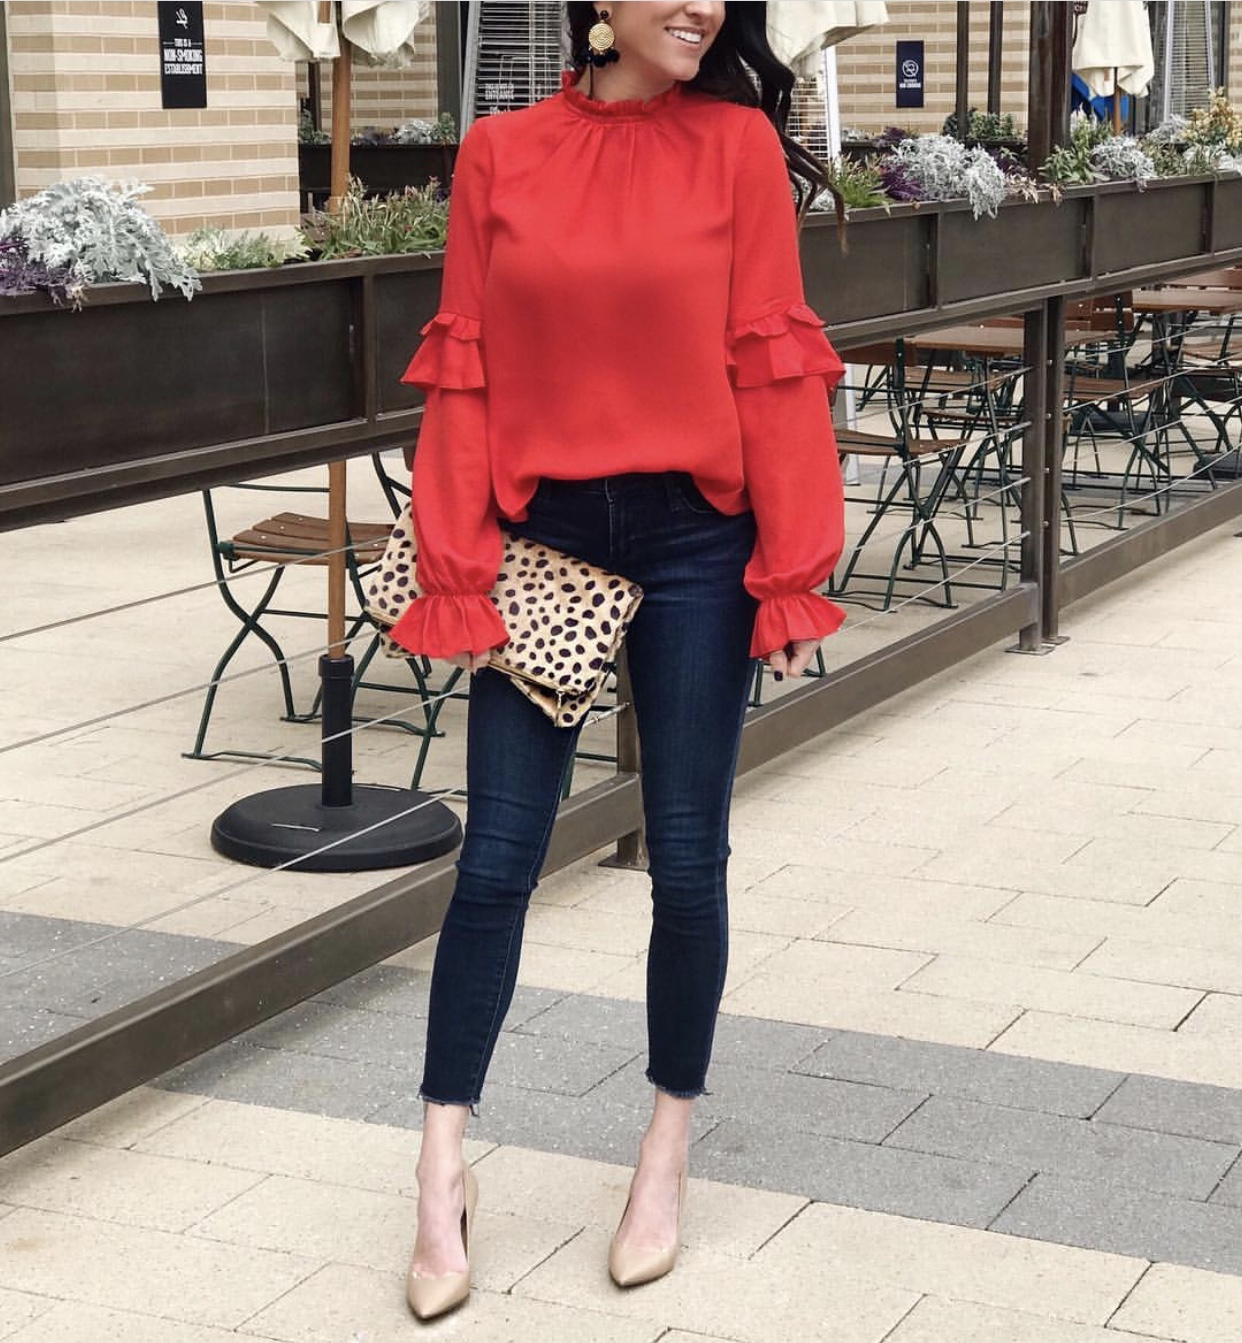 Jeans, Red Top, Heels, Leopard Clutch, Date Night